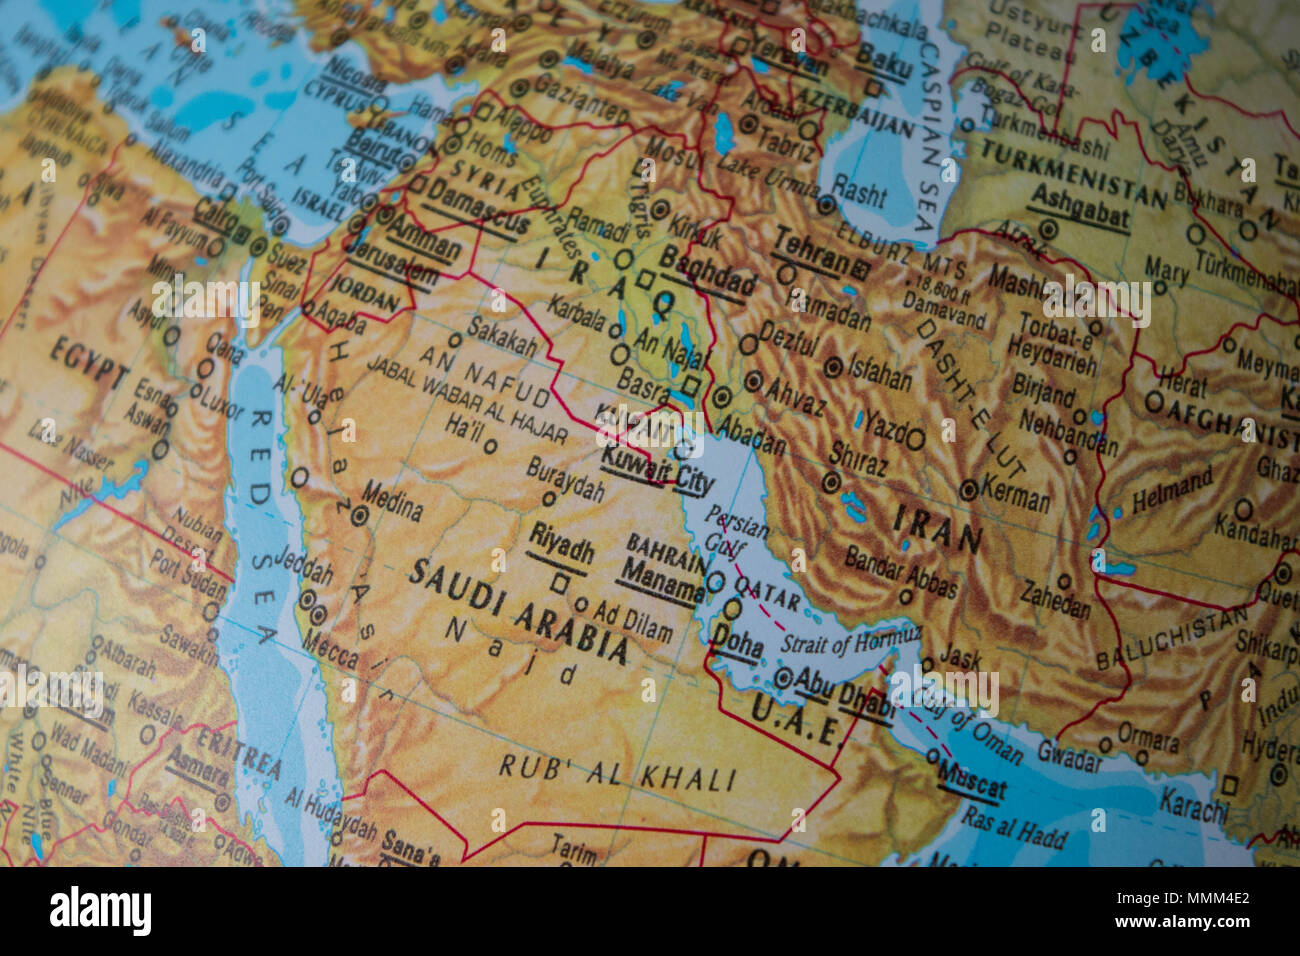 Middle East Map Stock Photos & Middle East Map Stock Images - Alamy